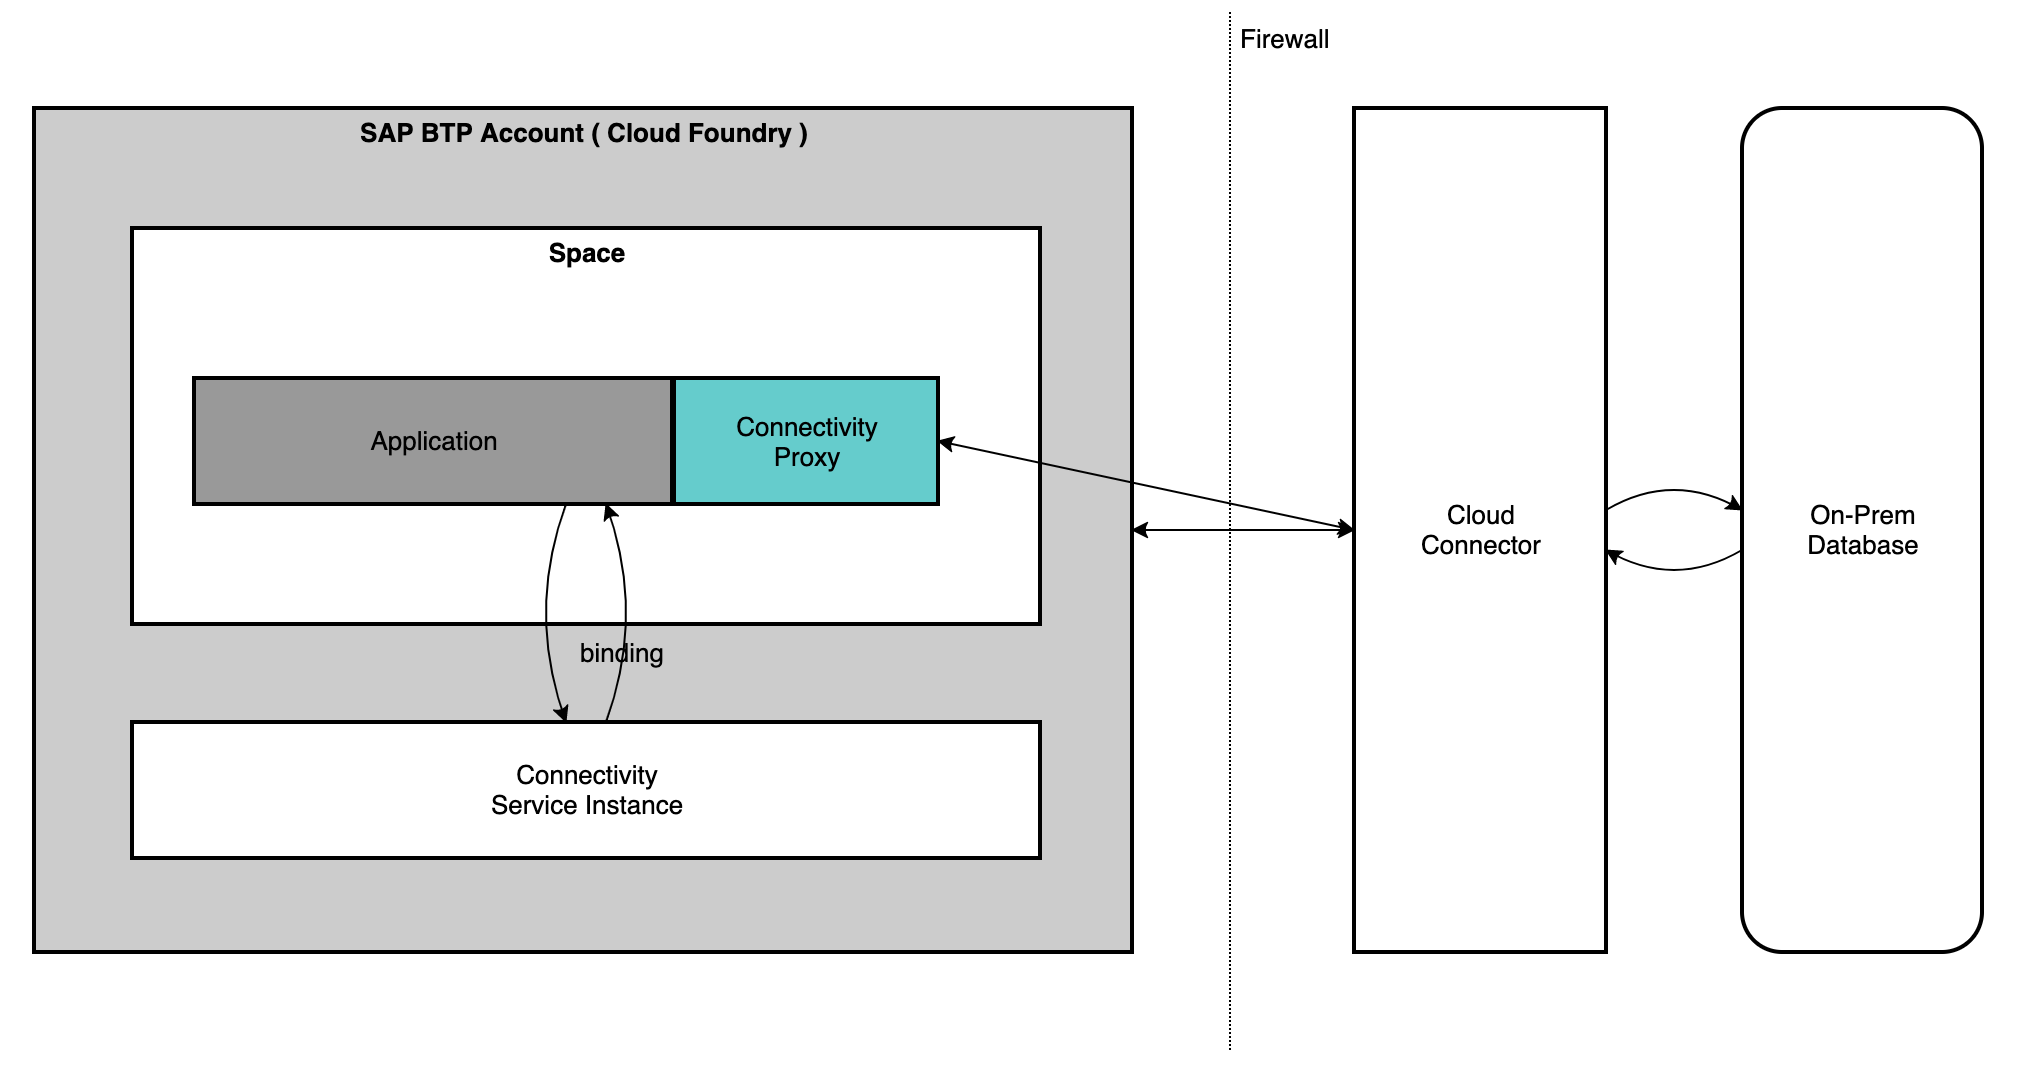 Application%20on%20SAP%20Cloud%20Foundry%20connecting%20to%20on-premise%20Postgres%20via%20Cloud%20Connector